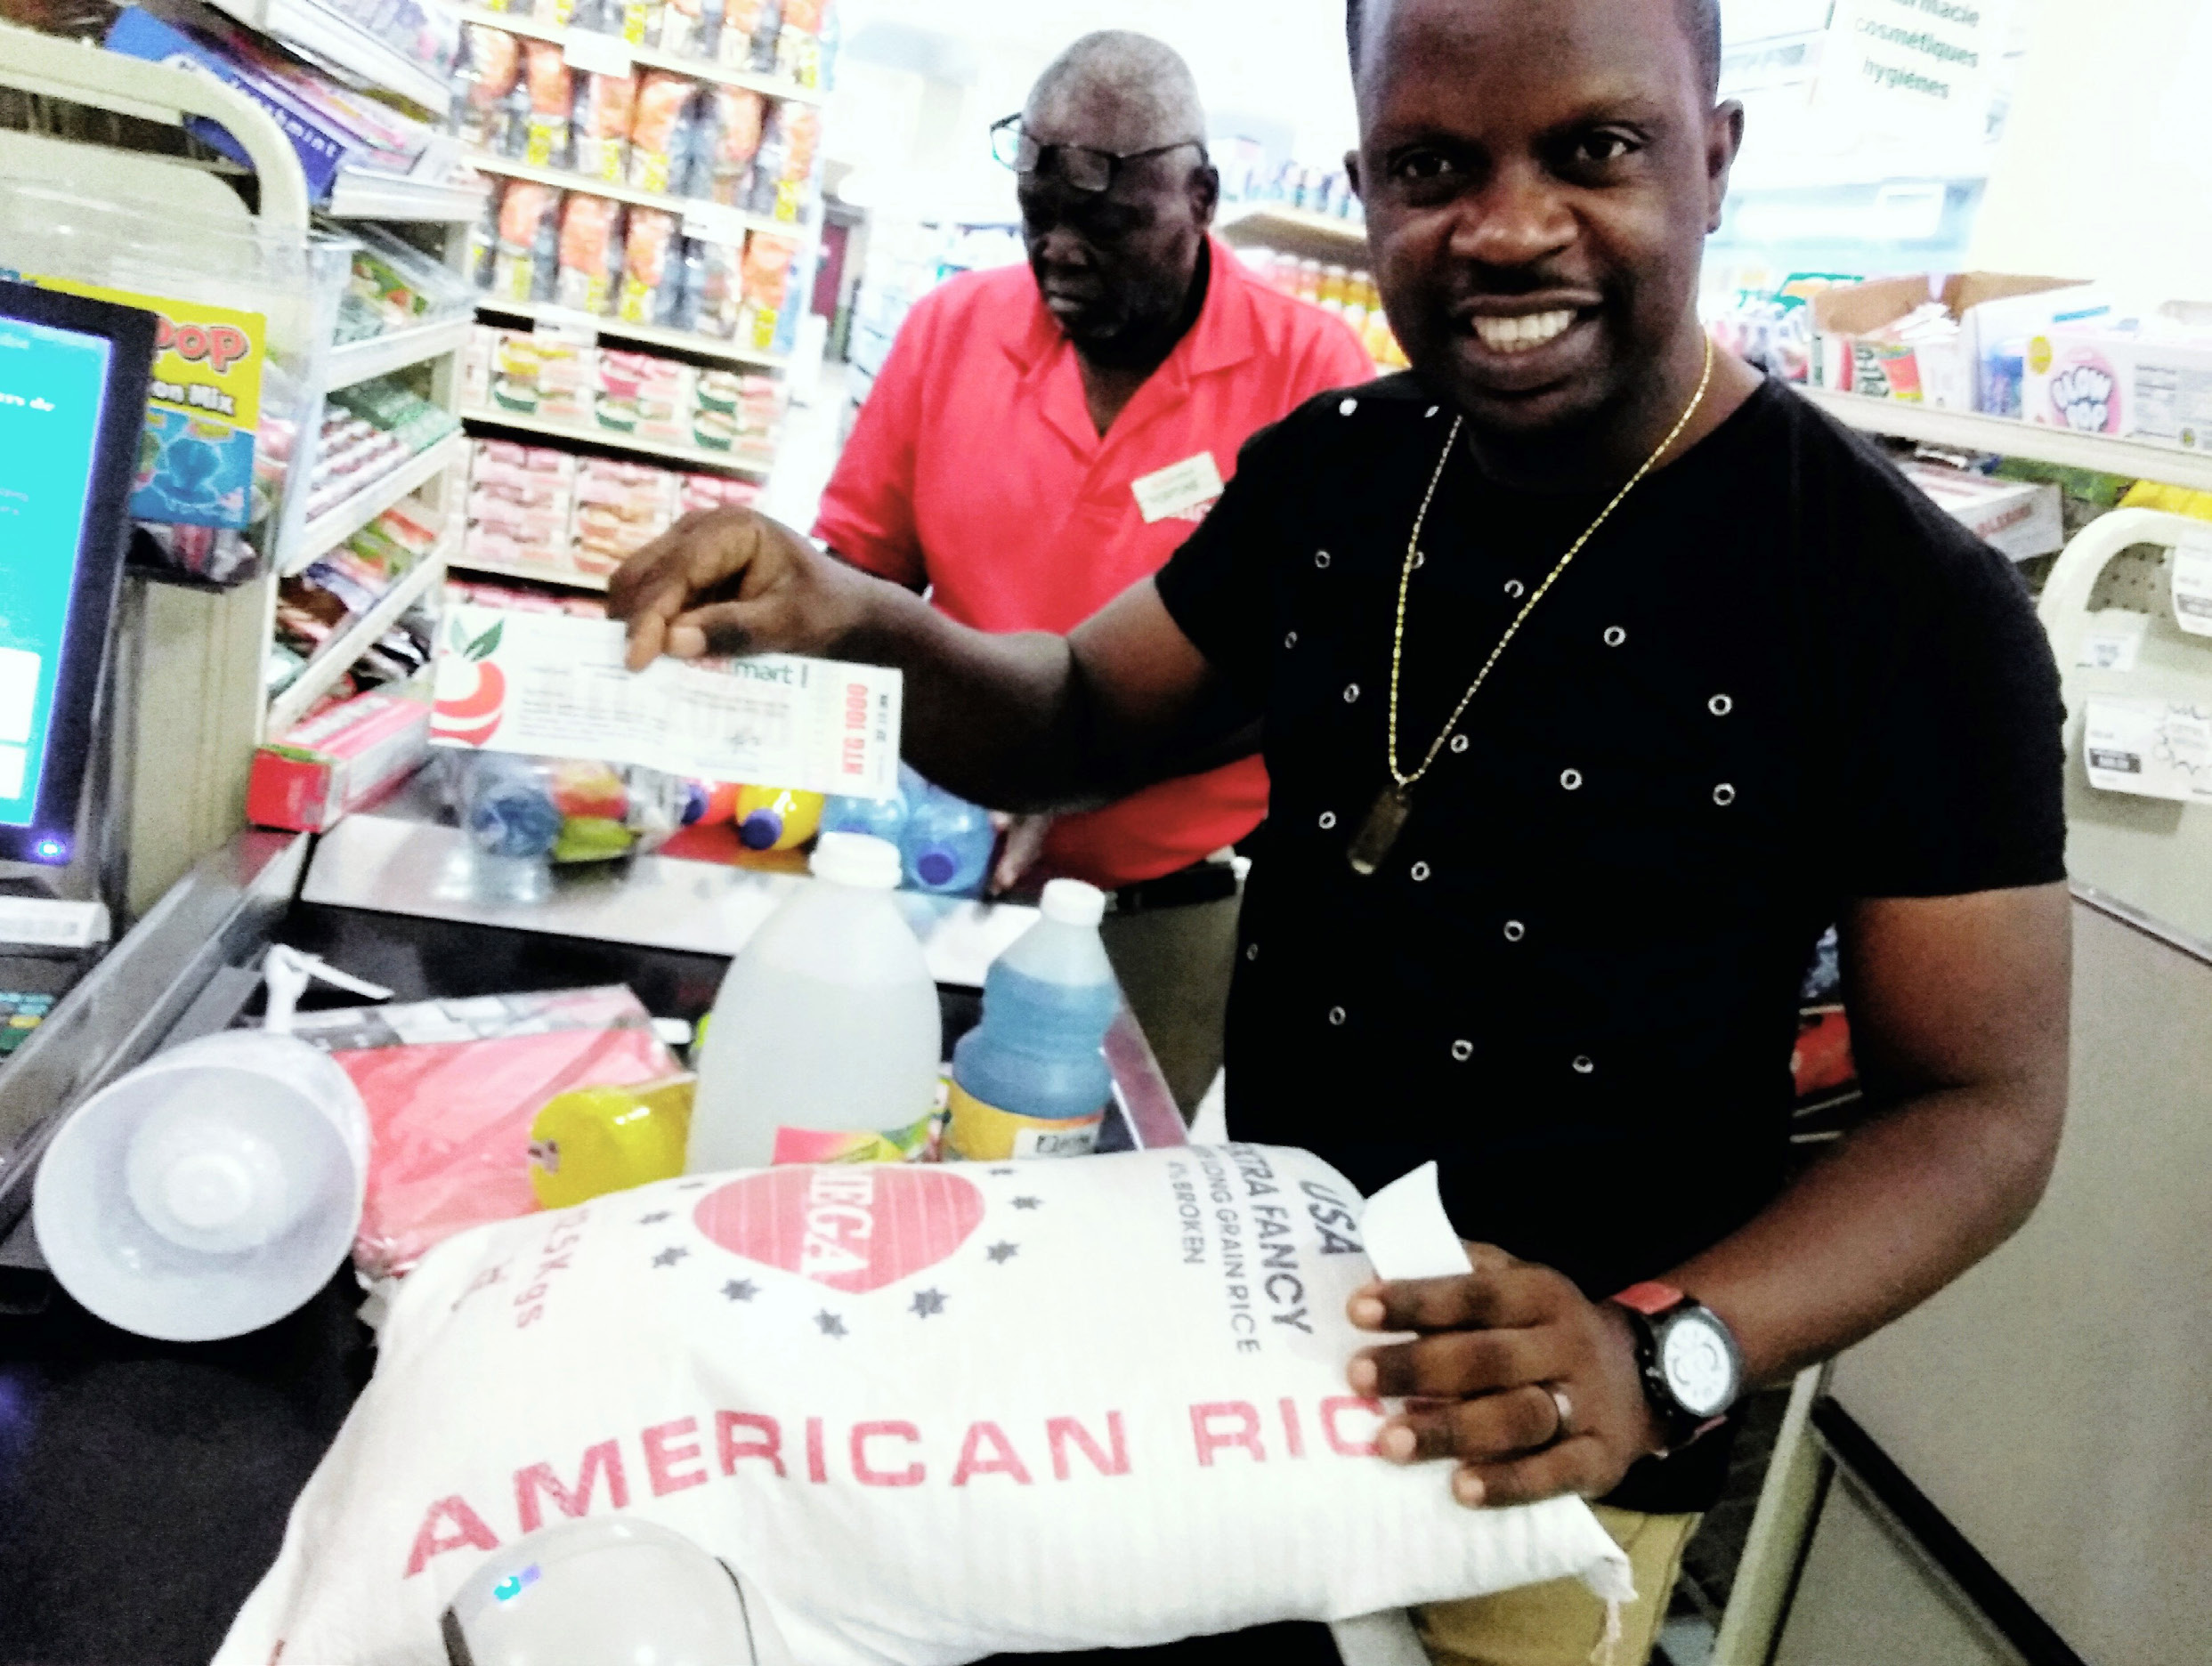 GCH Public Relations Coordinator Robenson Lucceus using food stamps to purchase rice at a local grocer. Food prices are up more than 20% over 2018.